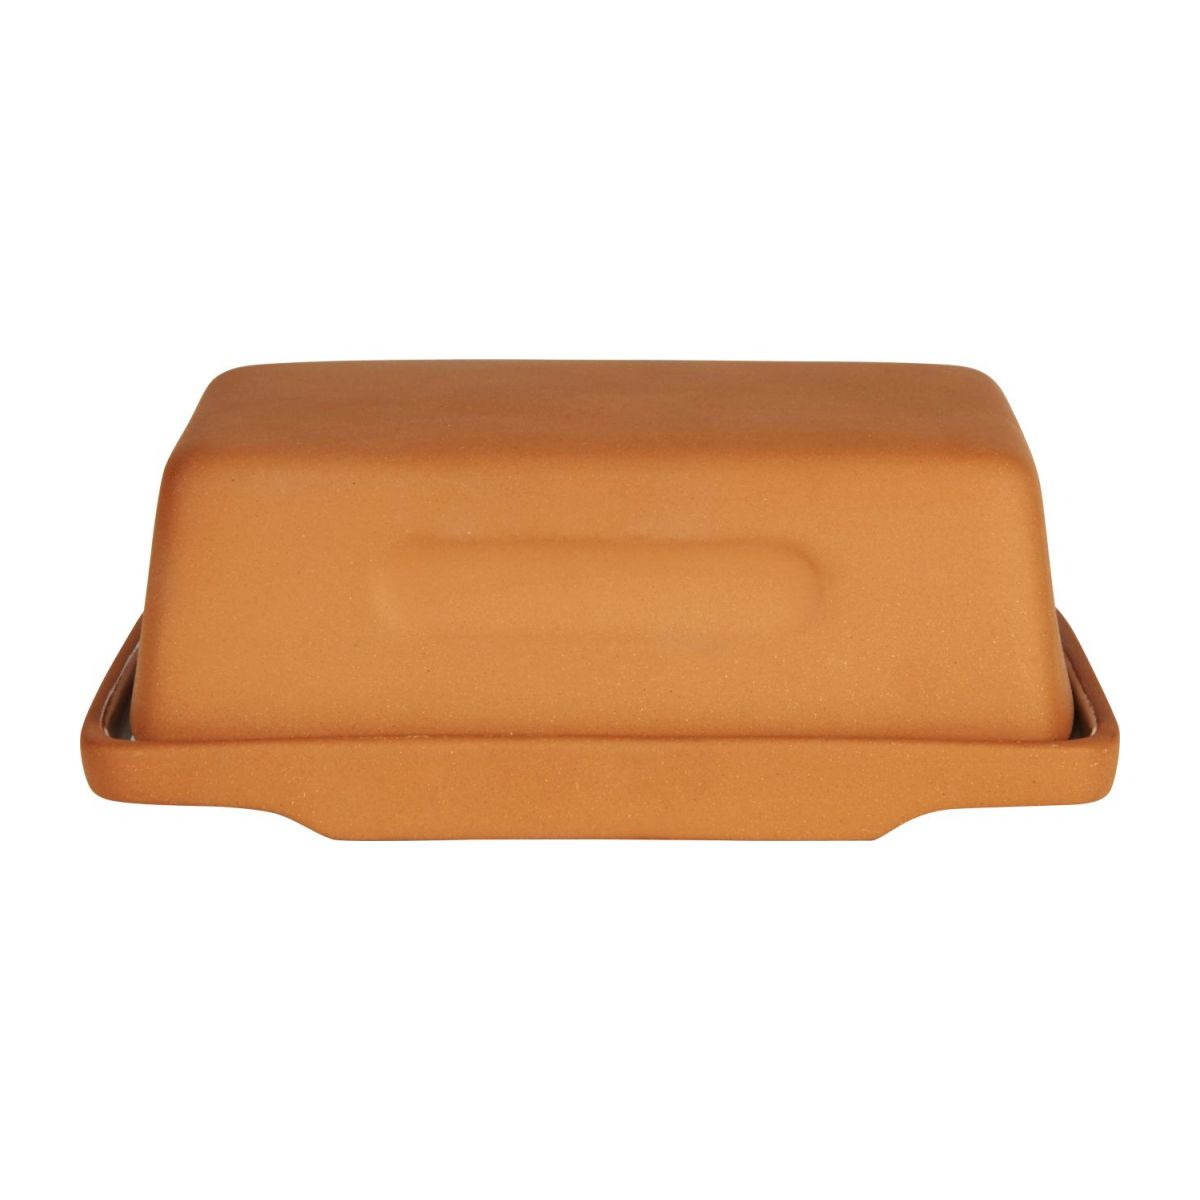 Butter dish n°3